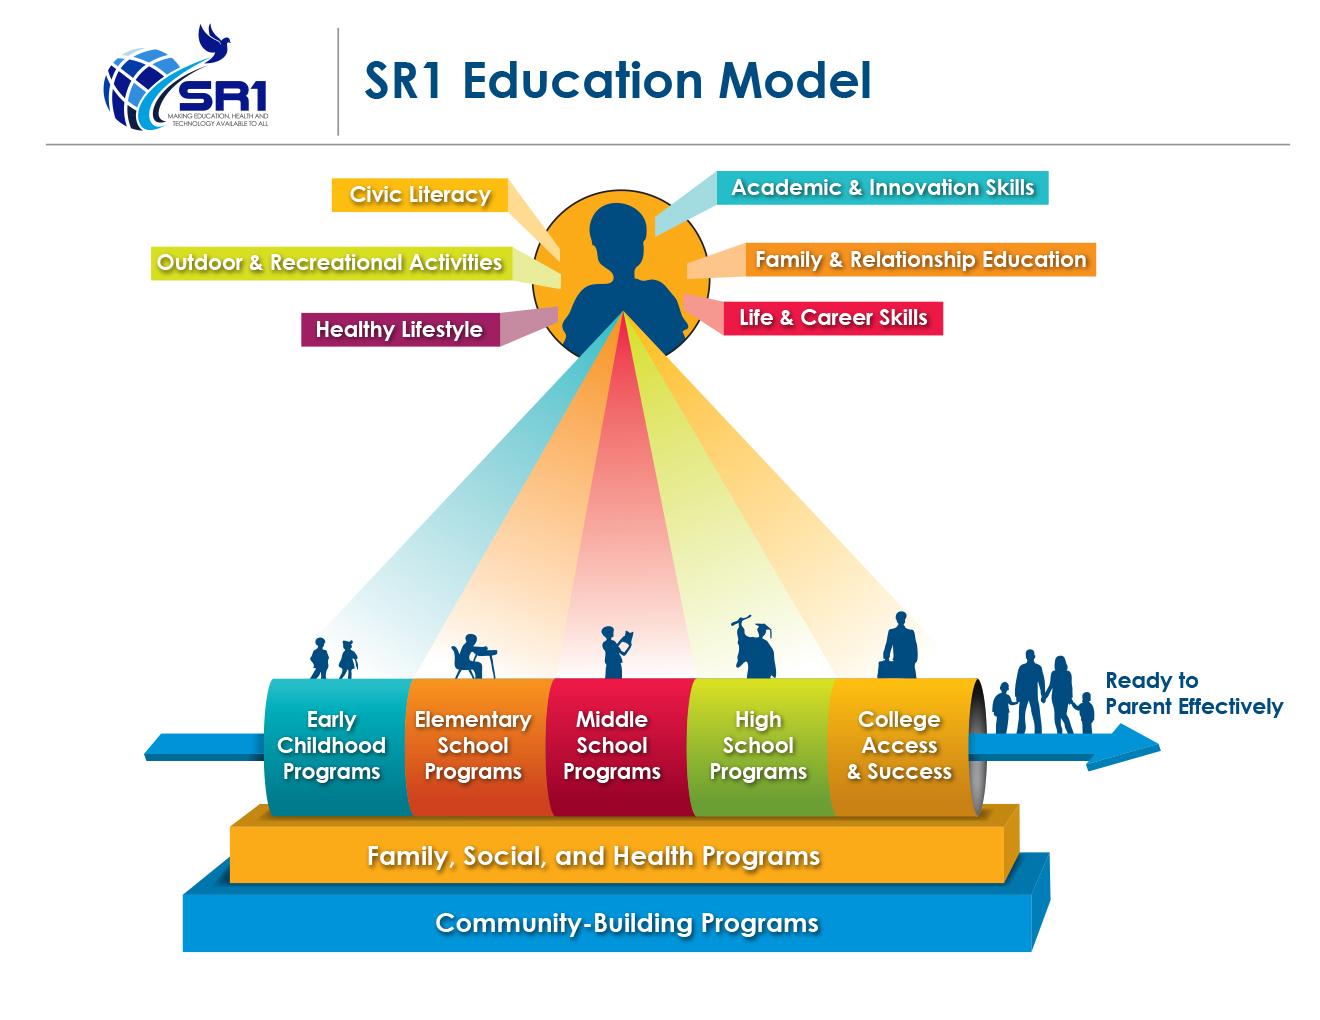 SR1_EducationModel_Jan2016_03